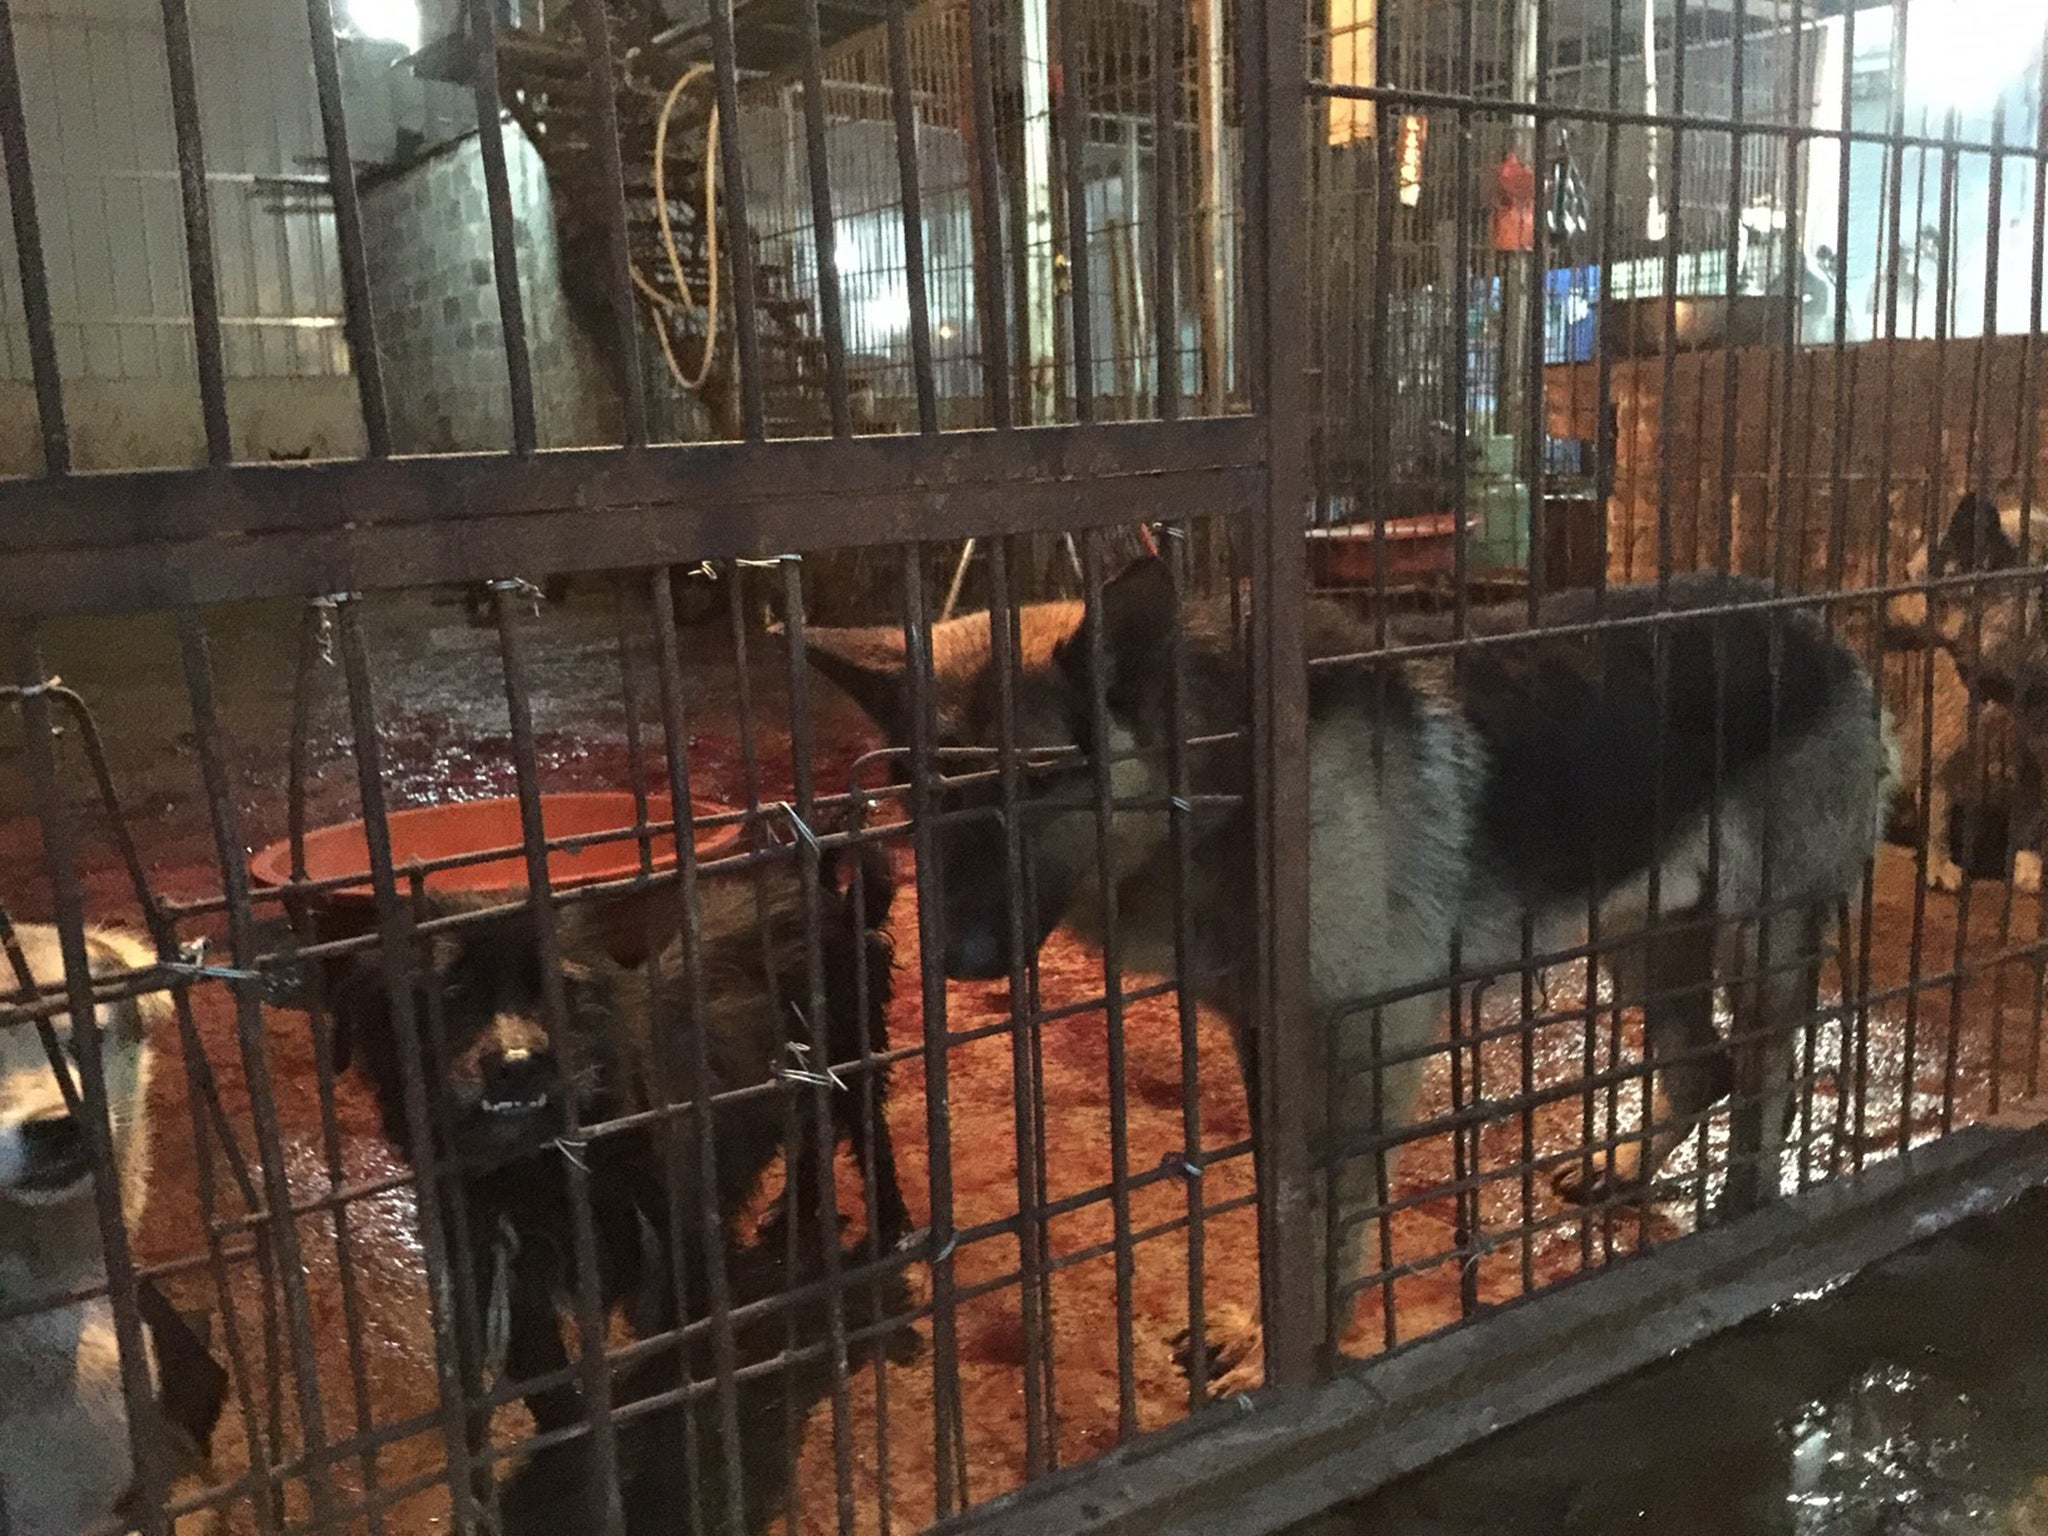 Dogs in blood-covered holding pen at slaughterhouse, Yulin